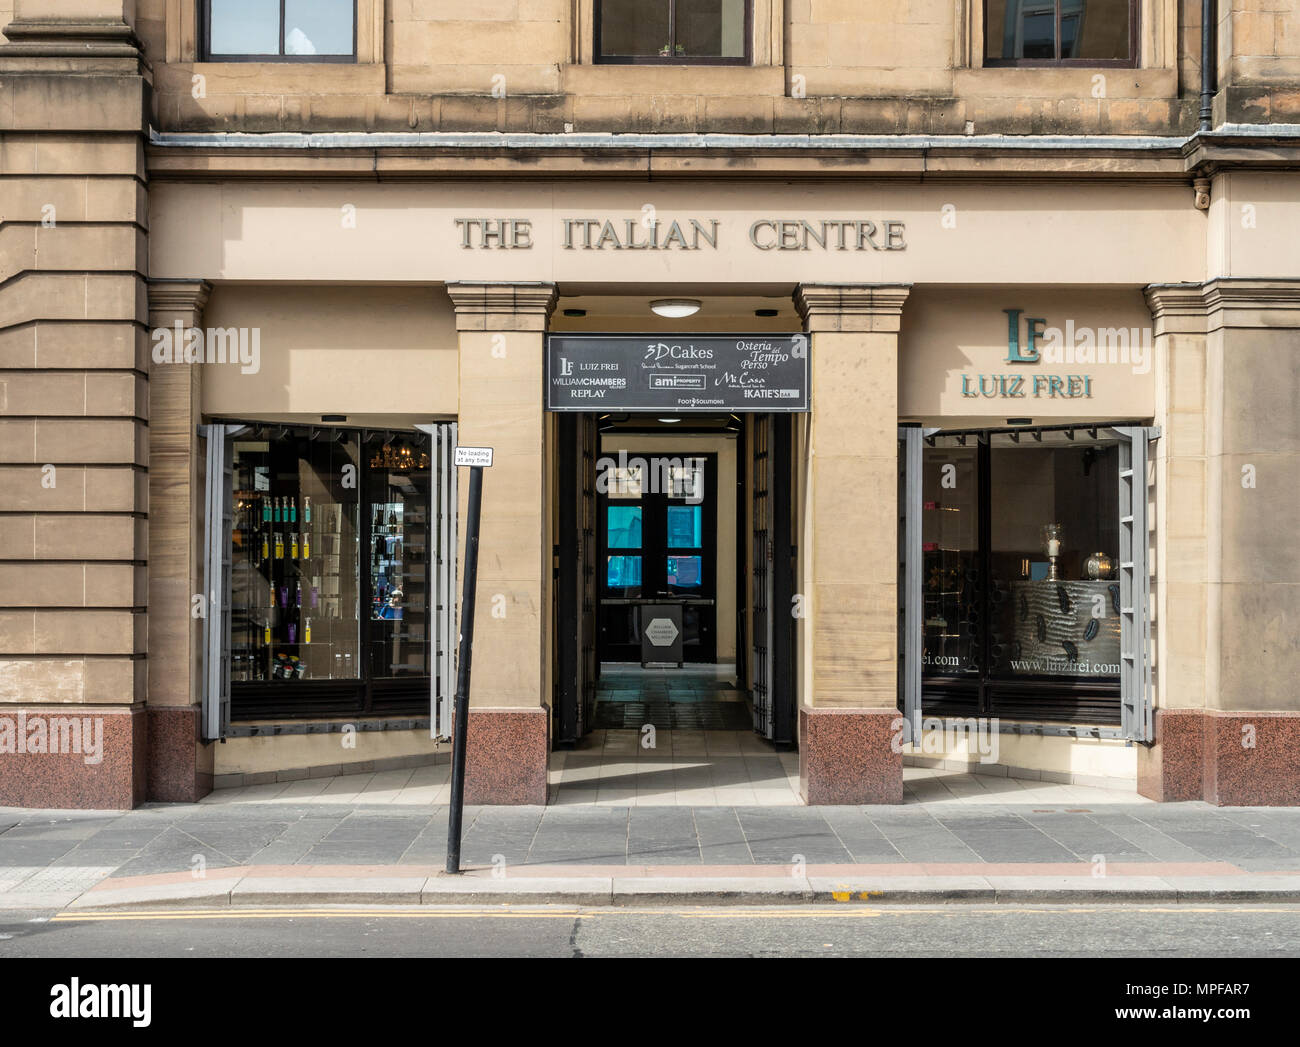 Facade and entrance to The Italian Centre  in the Merchant City area of Glasgow, Scotland, UK - Stock Image